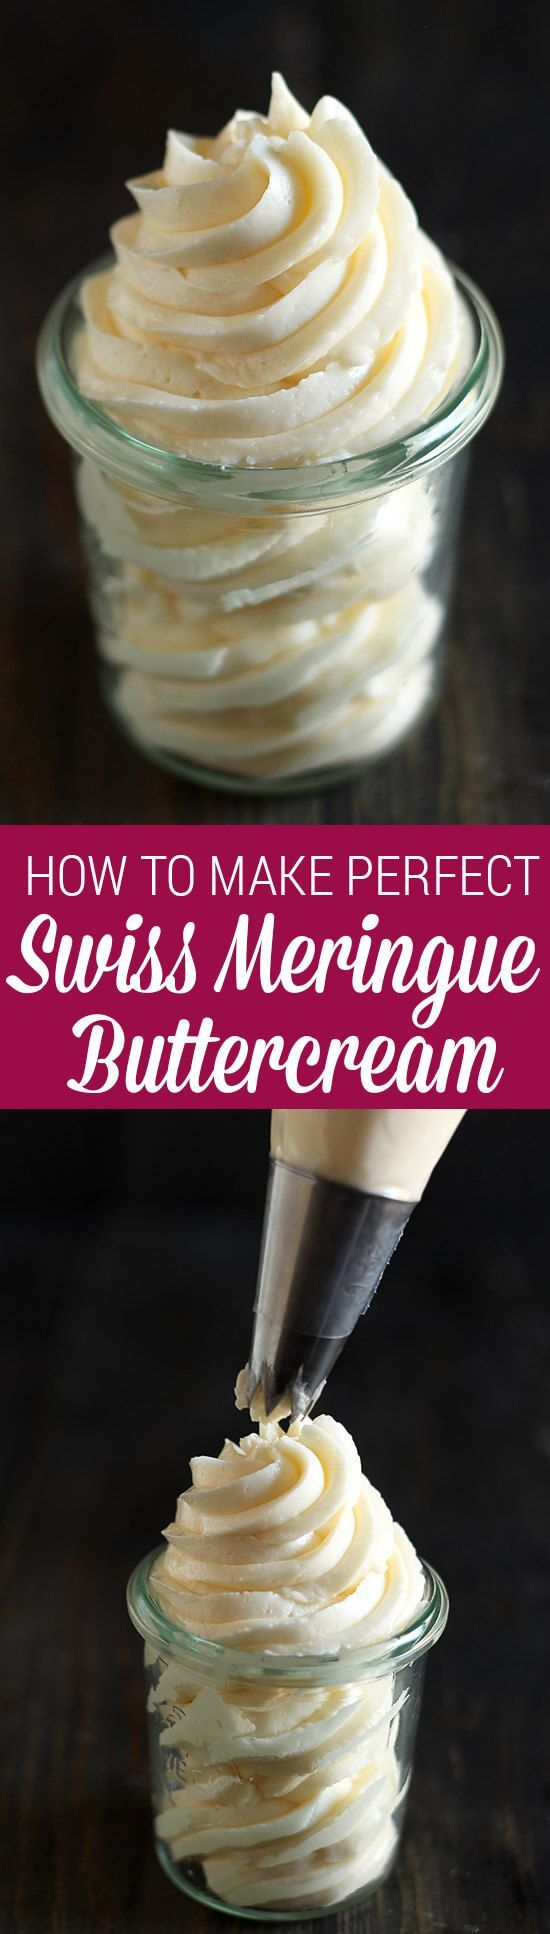 This is now my FAVORITE buttercream ever!! Love that it can be made ahead of time! TONS of flavor ideas here too.